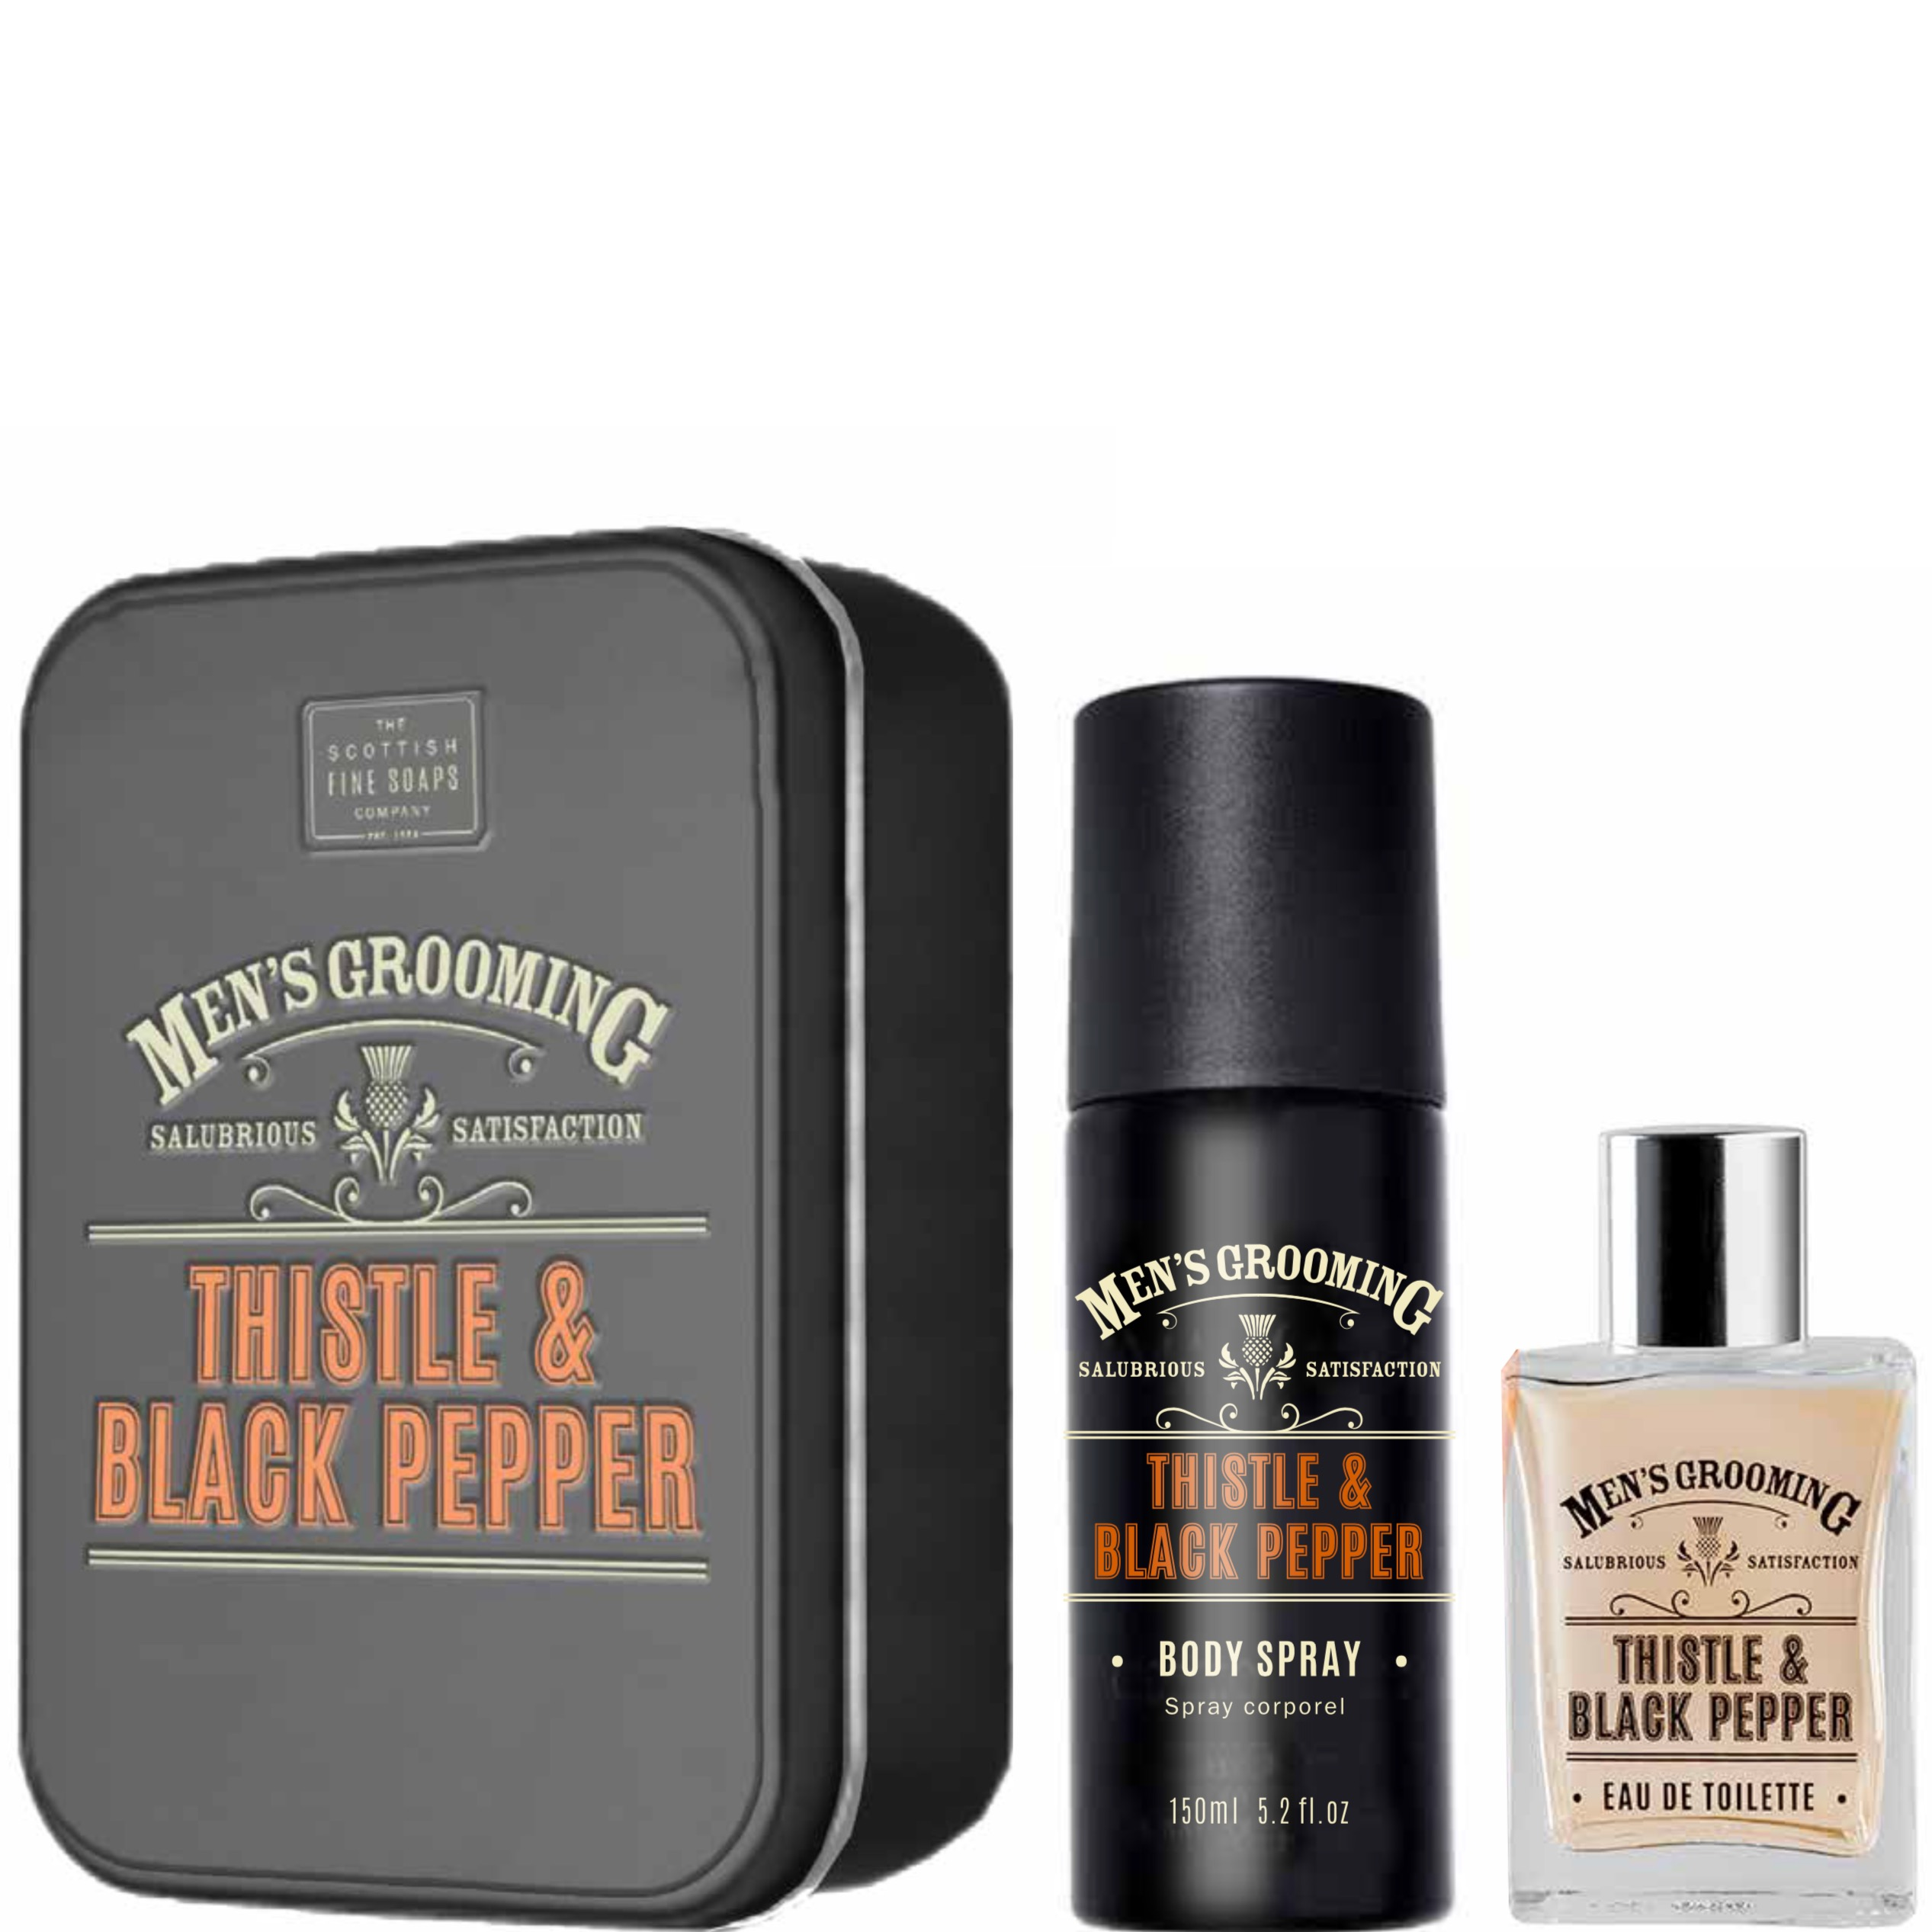 Duo Gift Set Thistle & Black Pepper